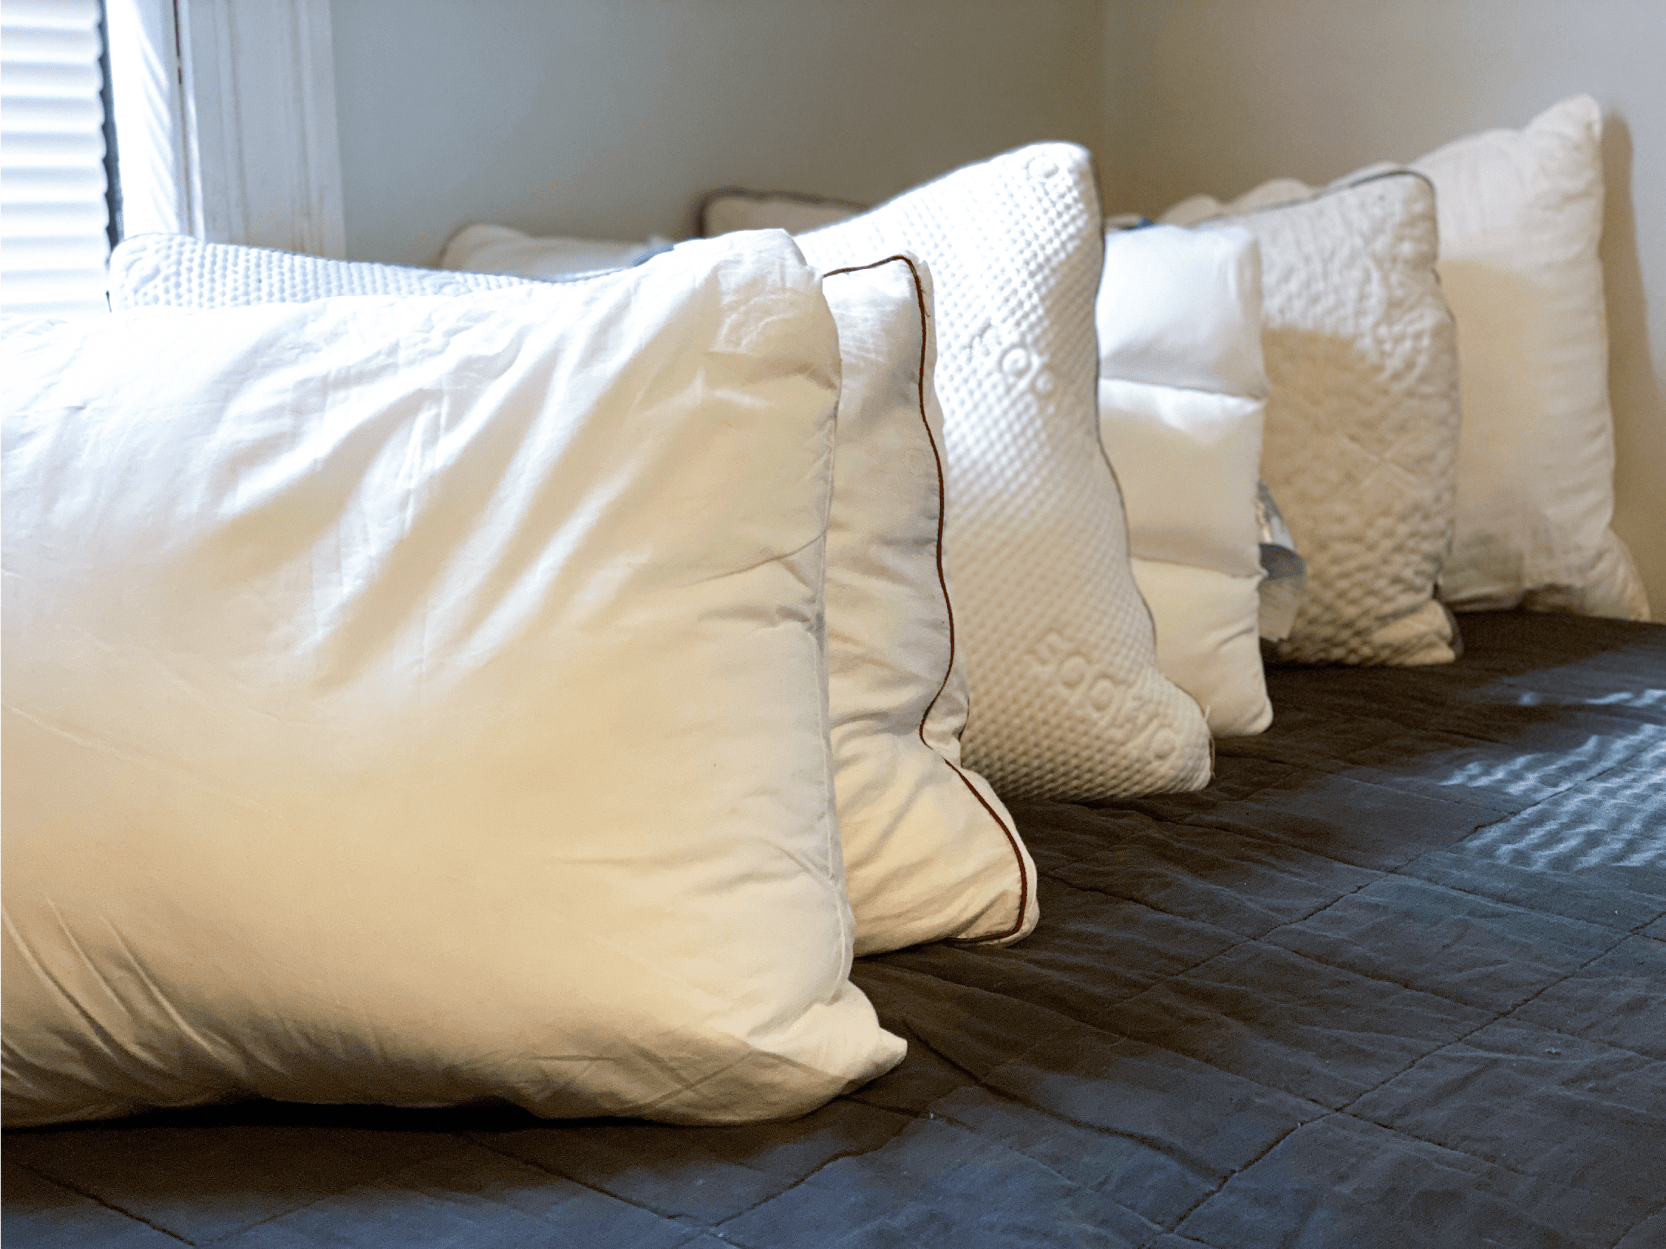 best bed pillows in 2021